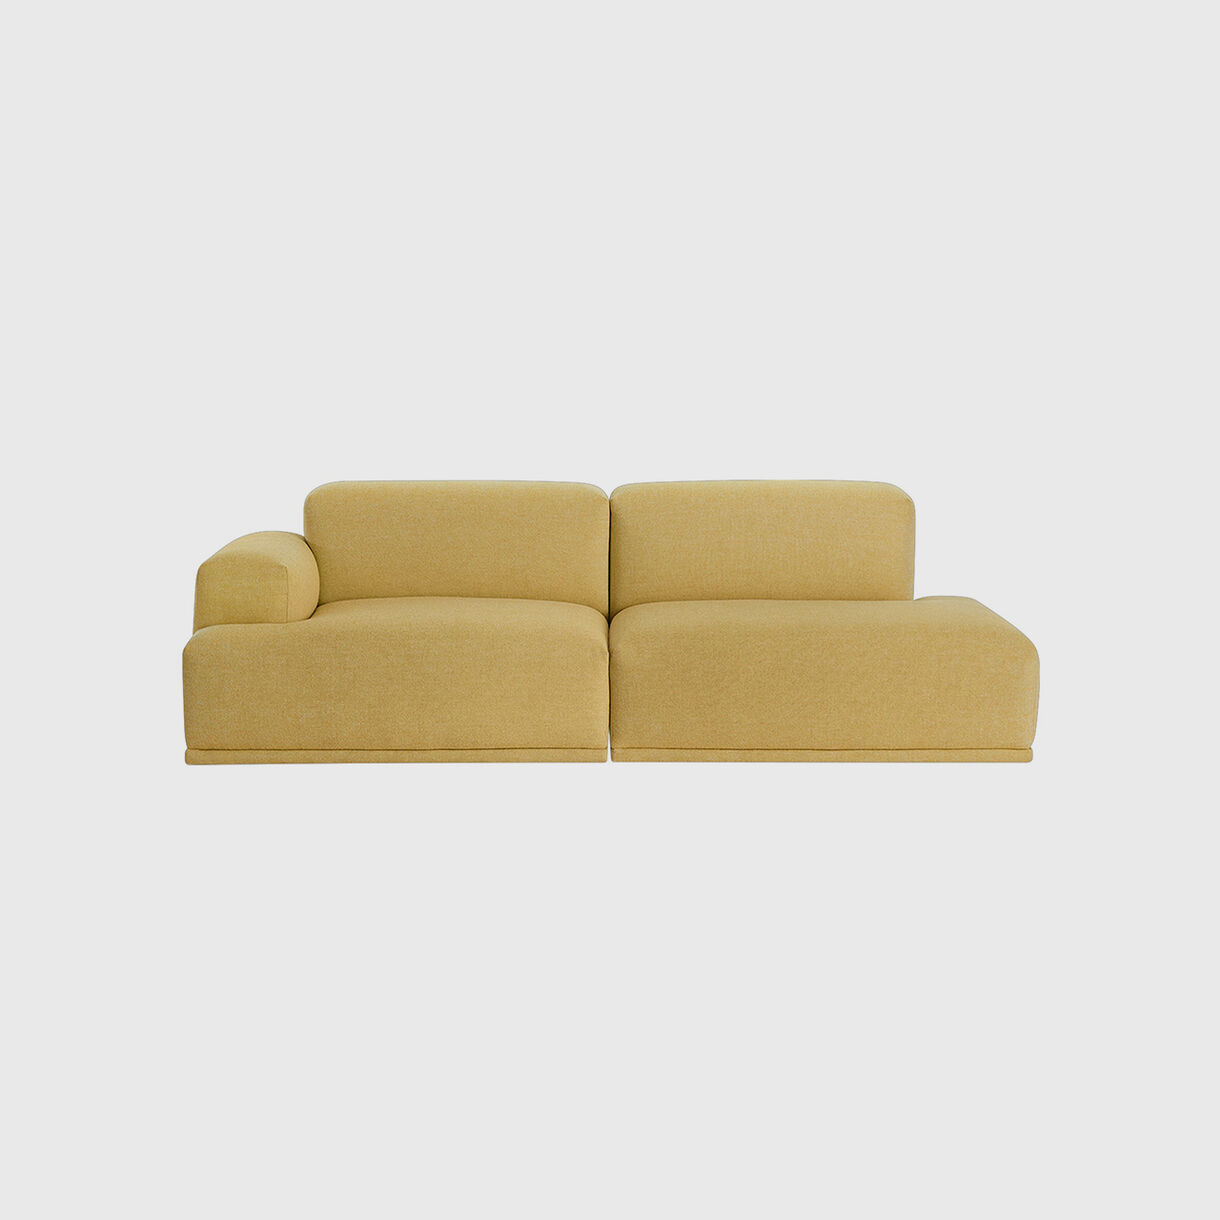 Connect Sofa, 2 Seater, Hallingdal 407